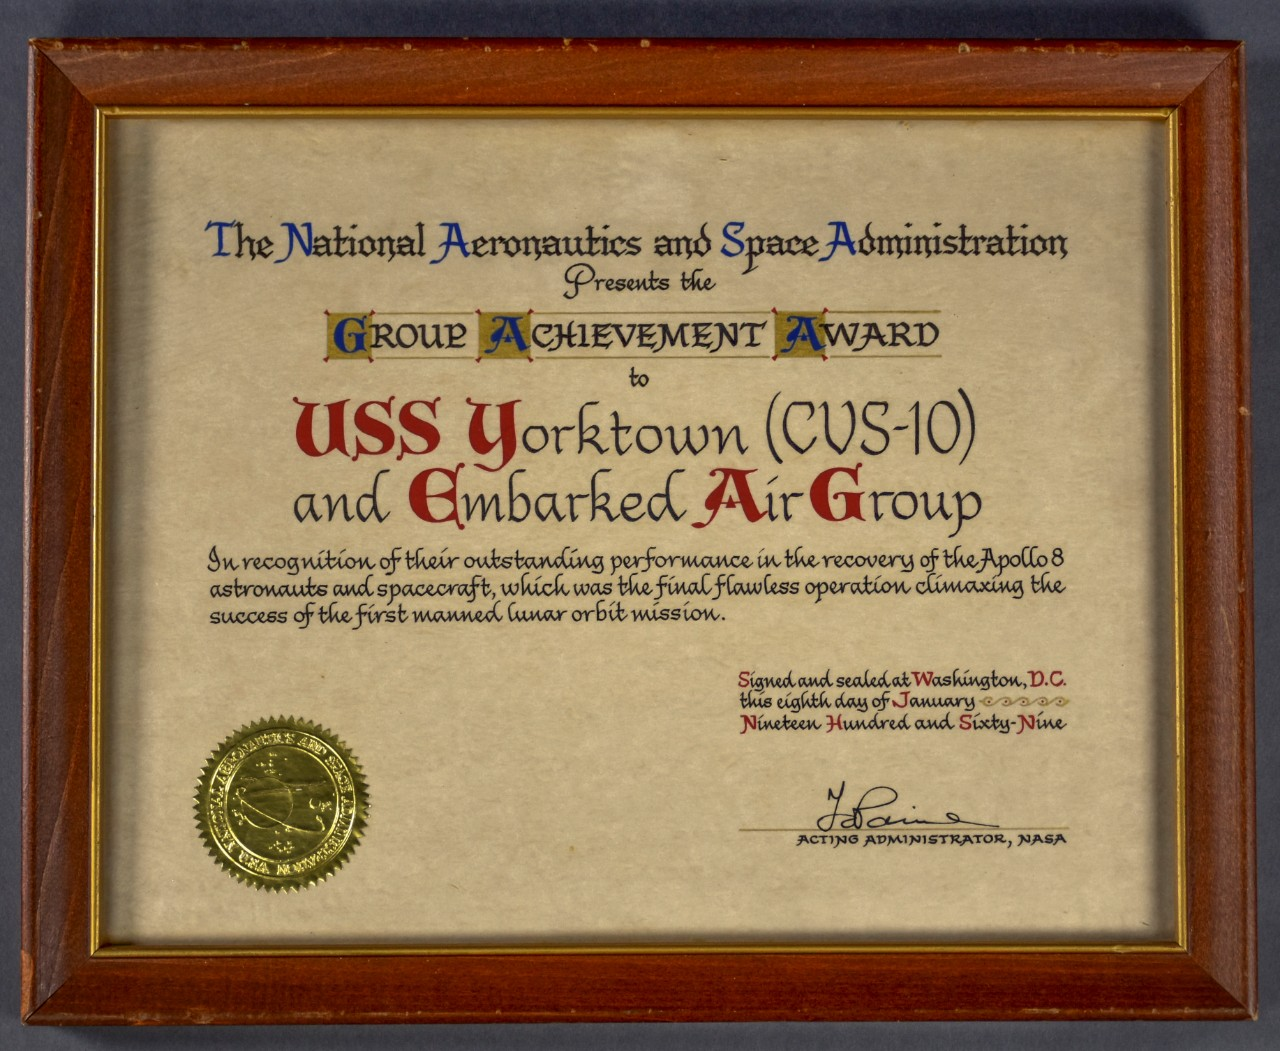 One certificate in old engish lettering given to USS yorktown crew on successful recovery for apollo 8